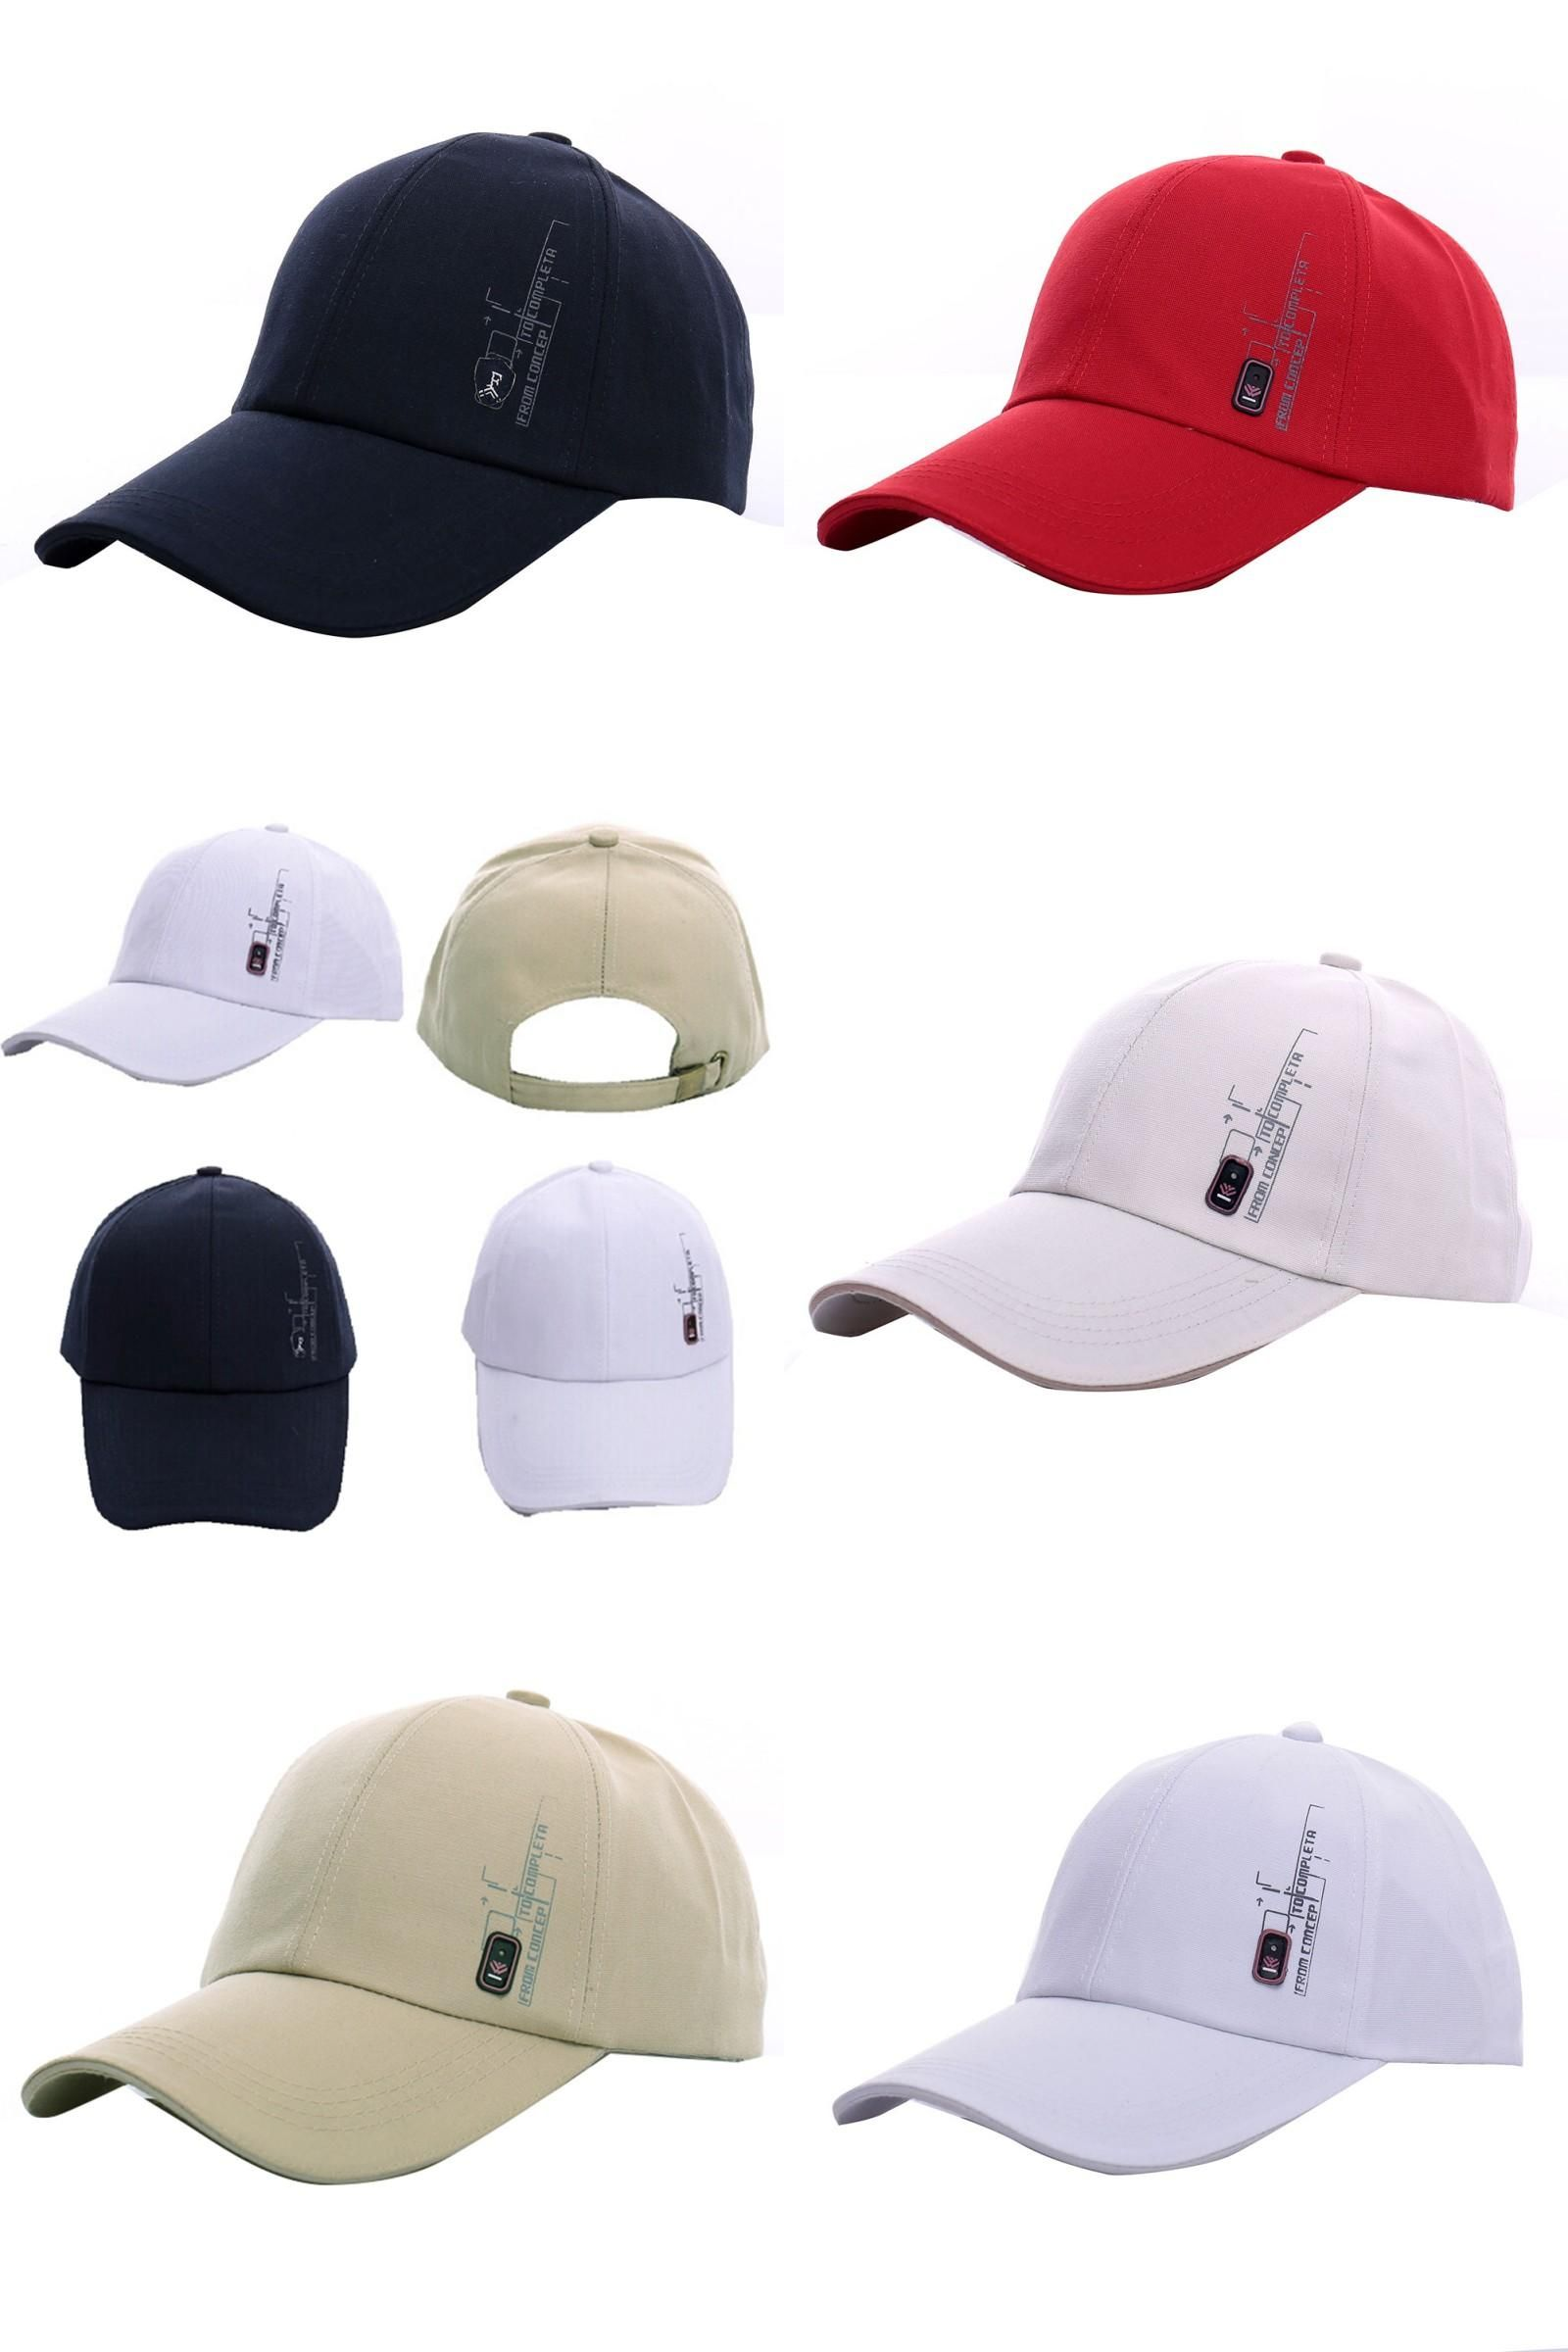 [Visit to Buy] 6 Colors Adjustable Outdoor Sports Sun Hat Outdoor Men Baseball Golf Hip-hop Bowler Cotton Cap #Advertisement